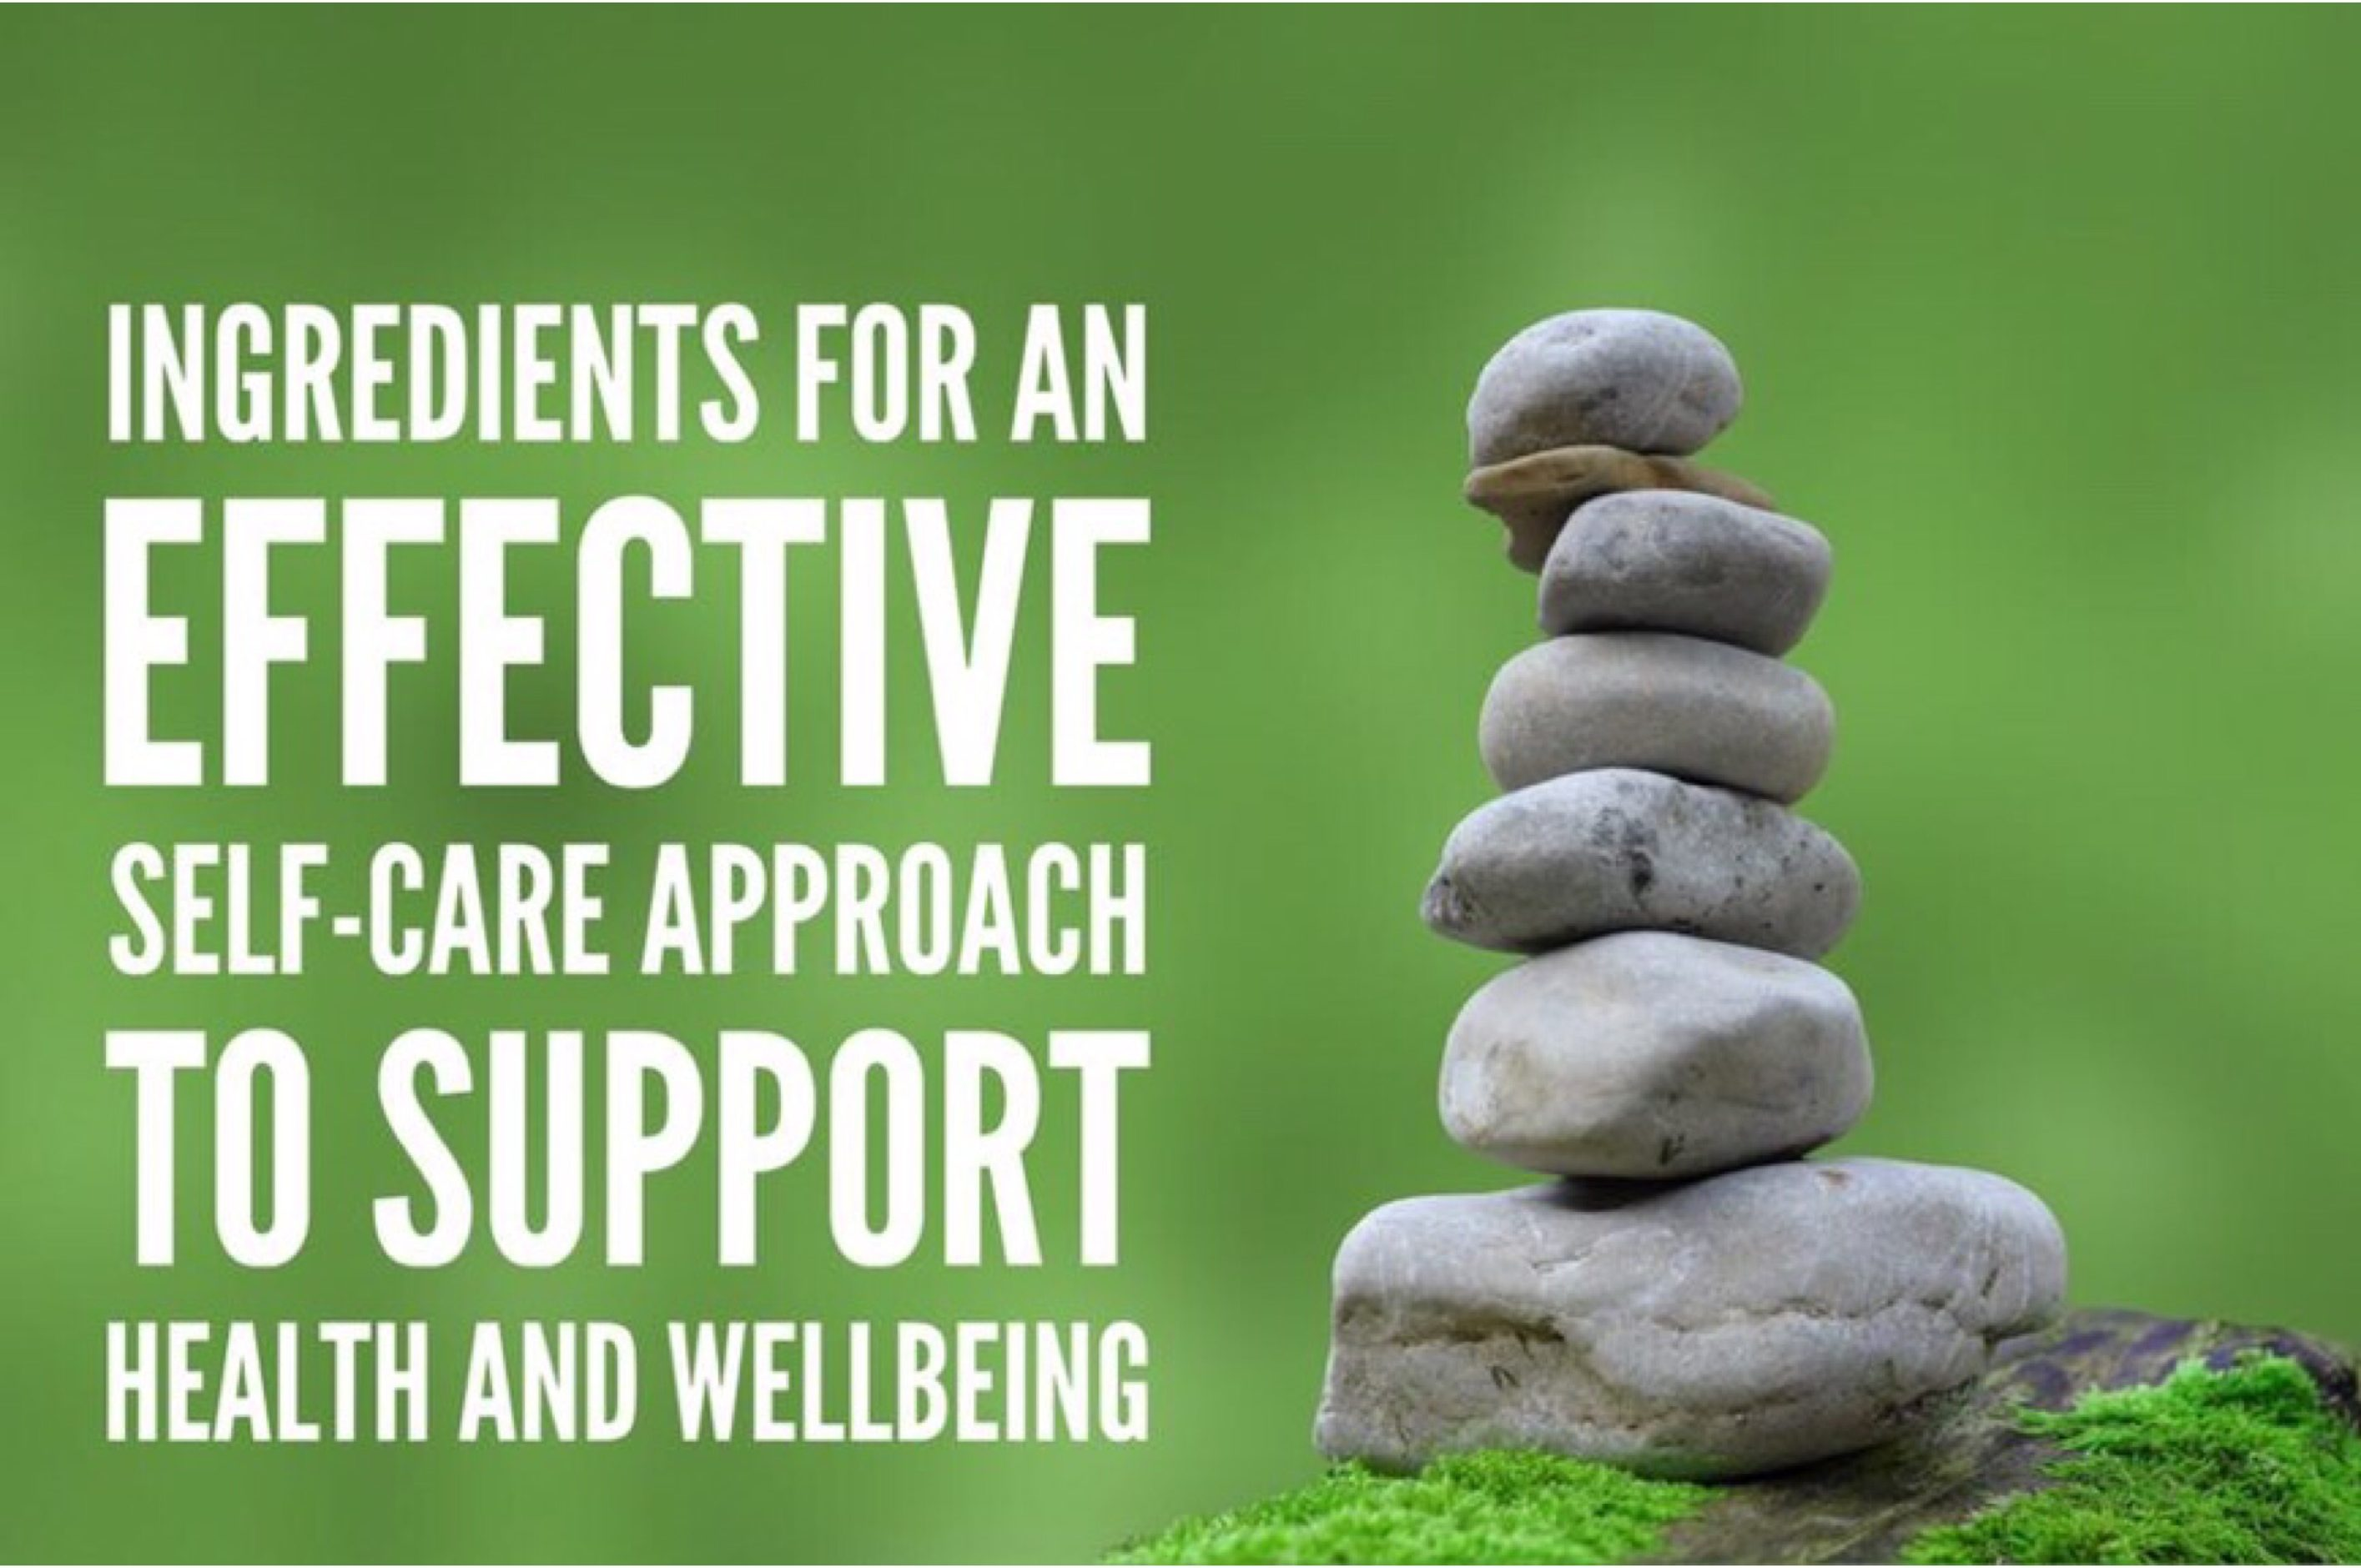 Ingredients for an Effective Self-Care Approach to Support Health and Wellbeing (On-Demand)